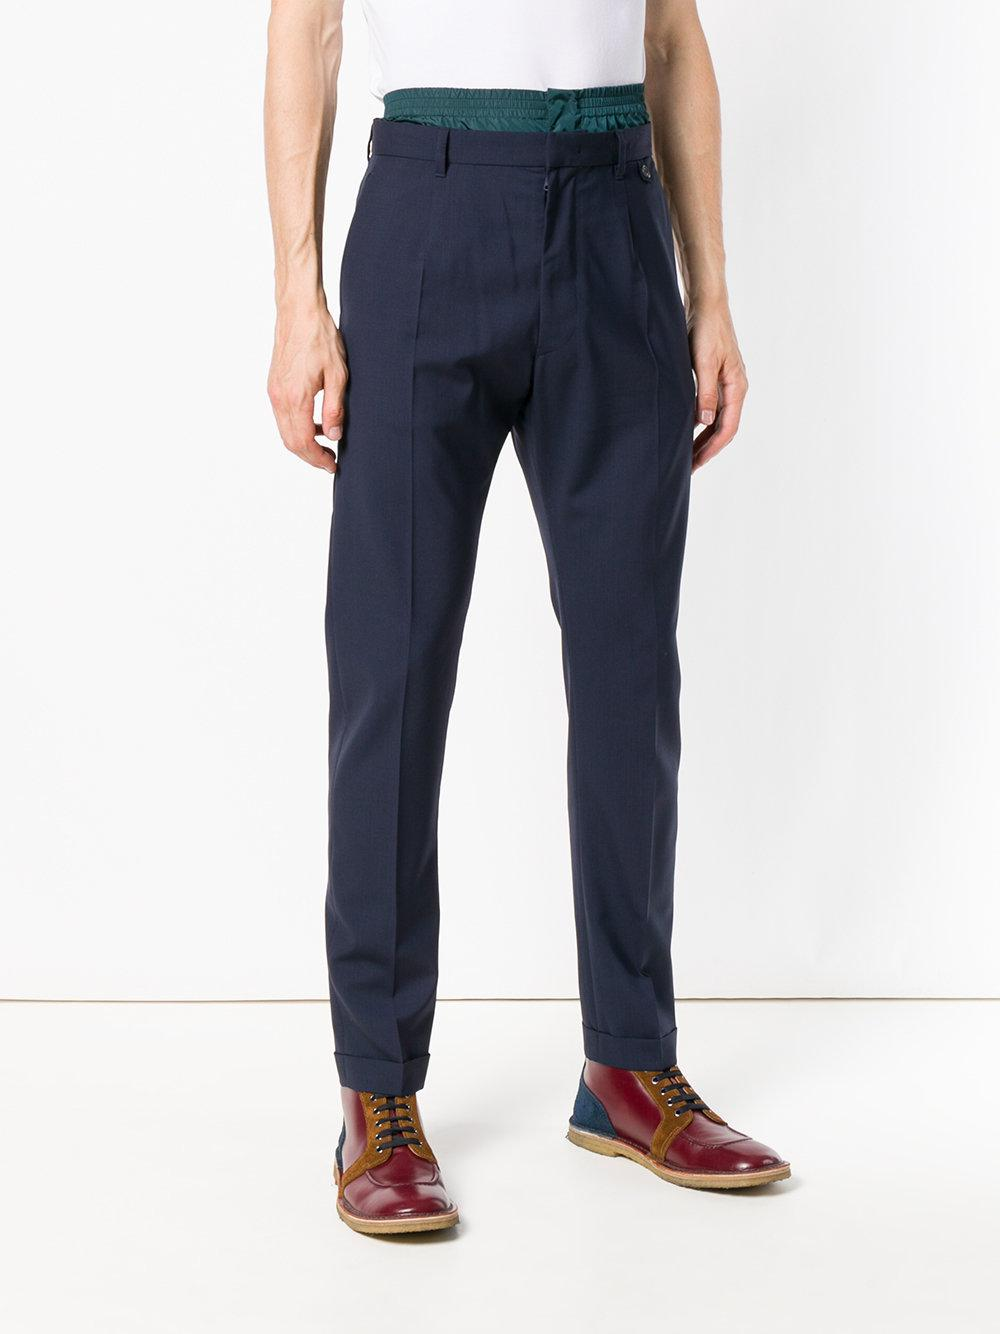 Prada Cotton Techno Waist Detail Trousers in Blue for Men